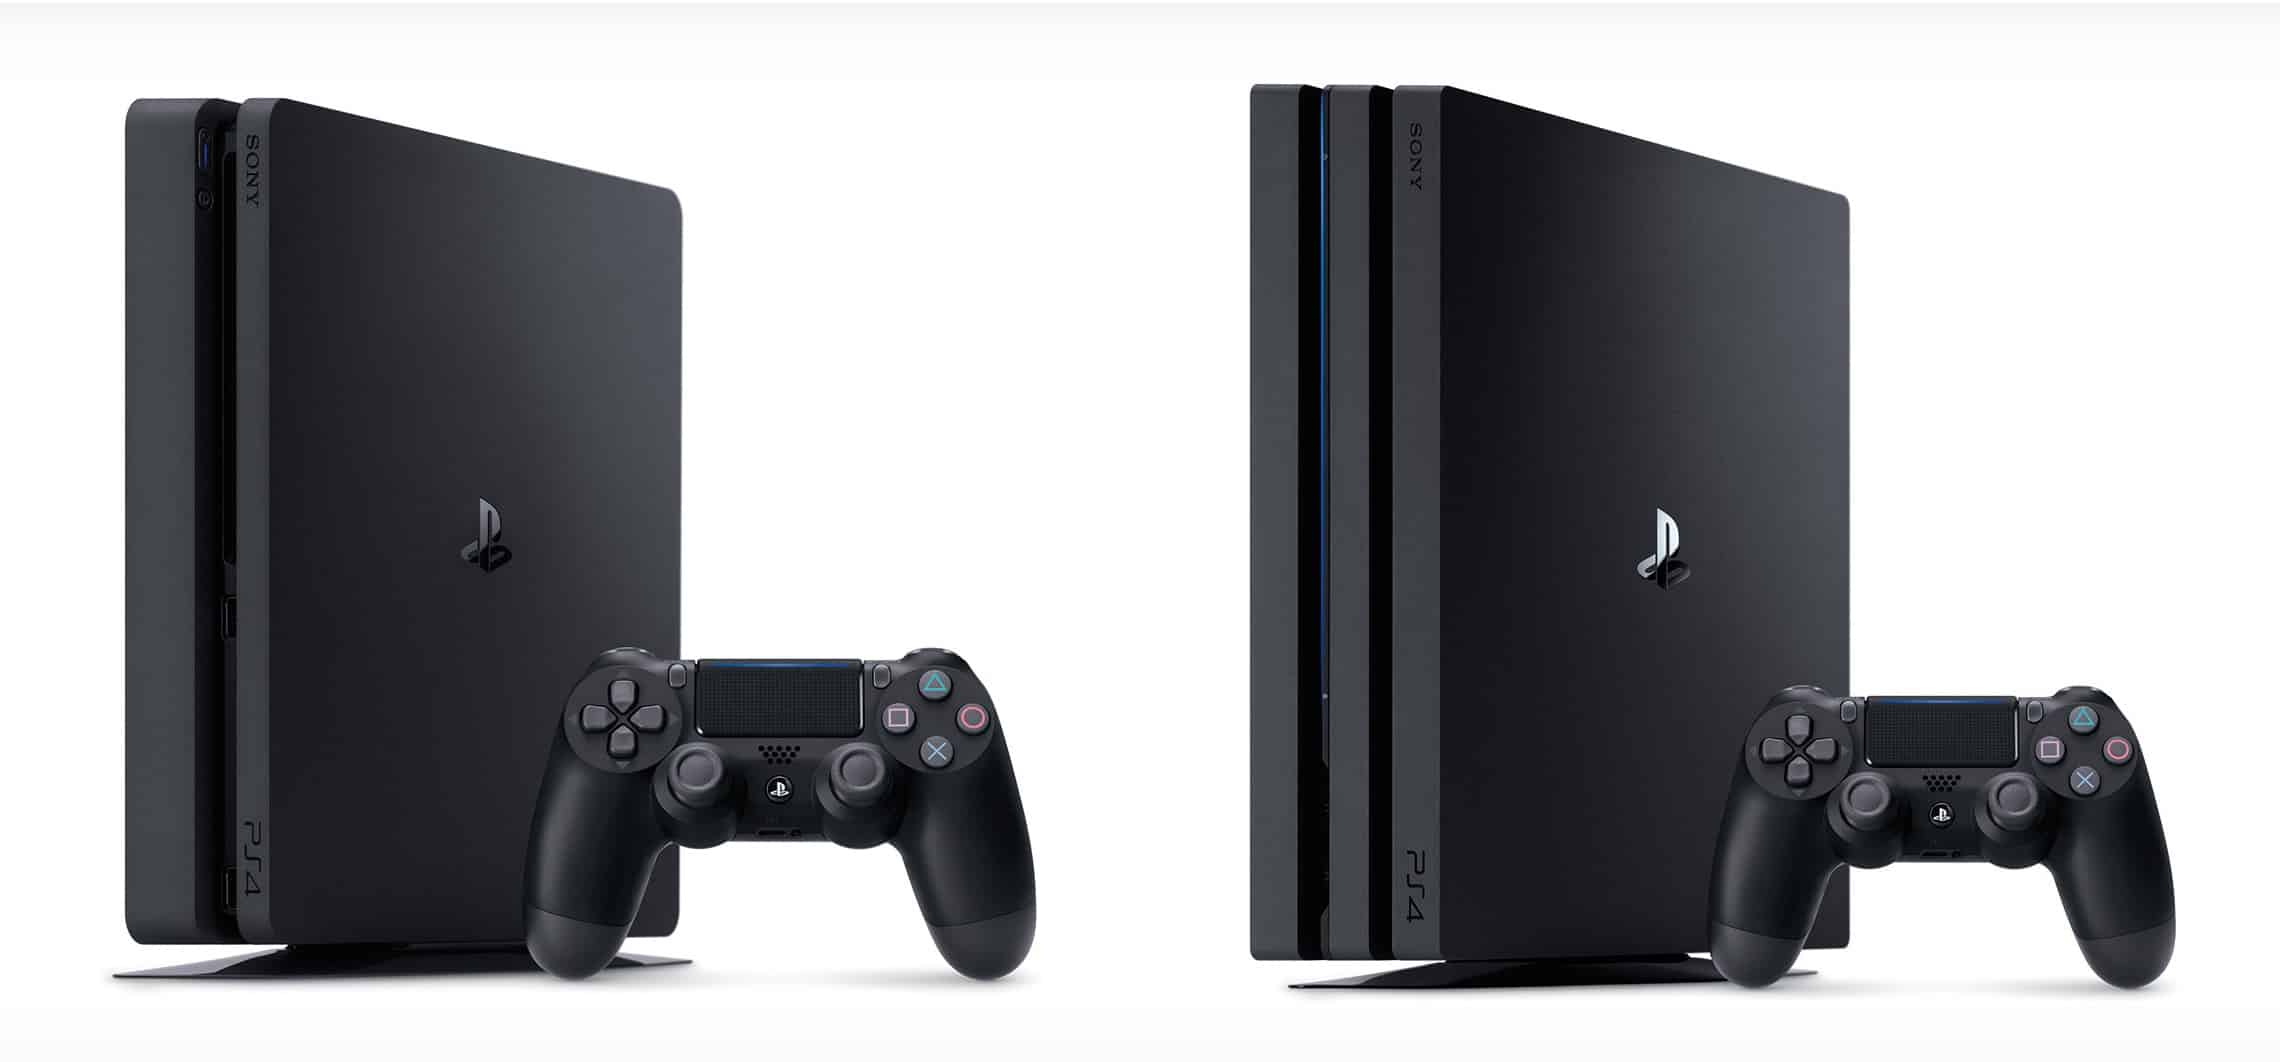 PS4 slim vs PS4 pro